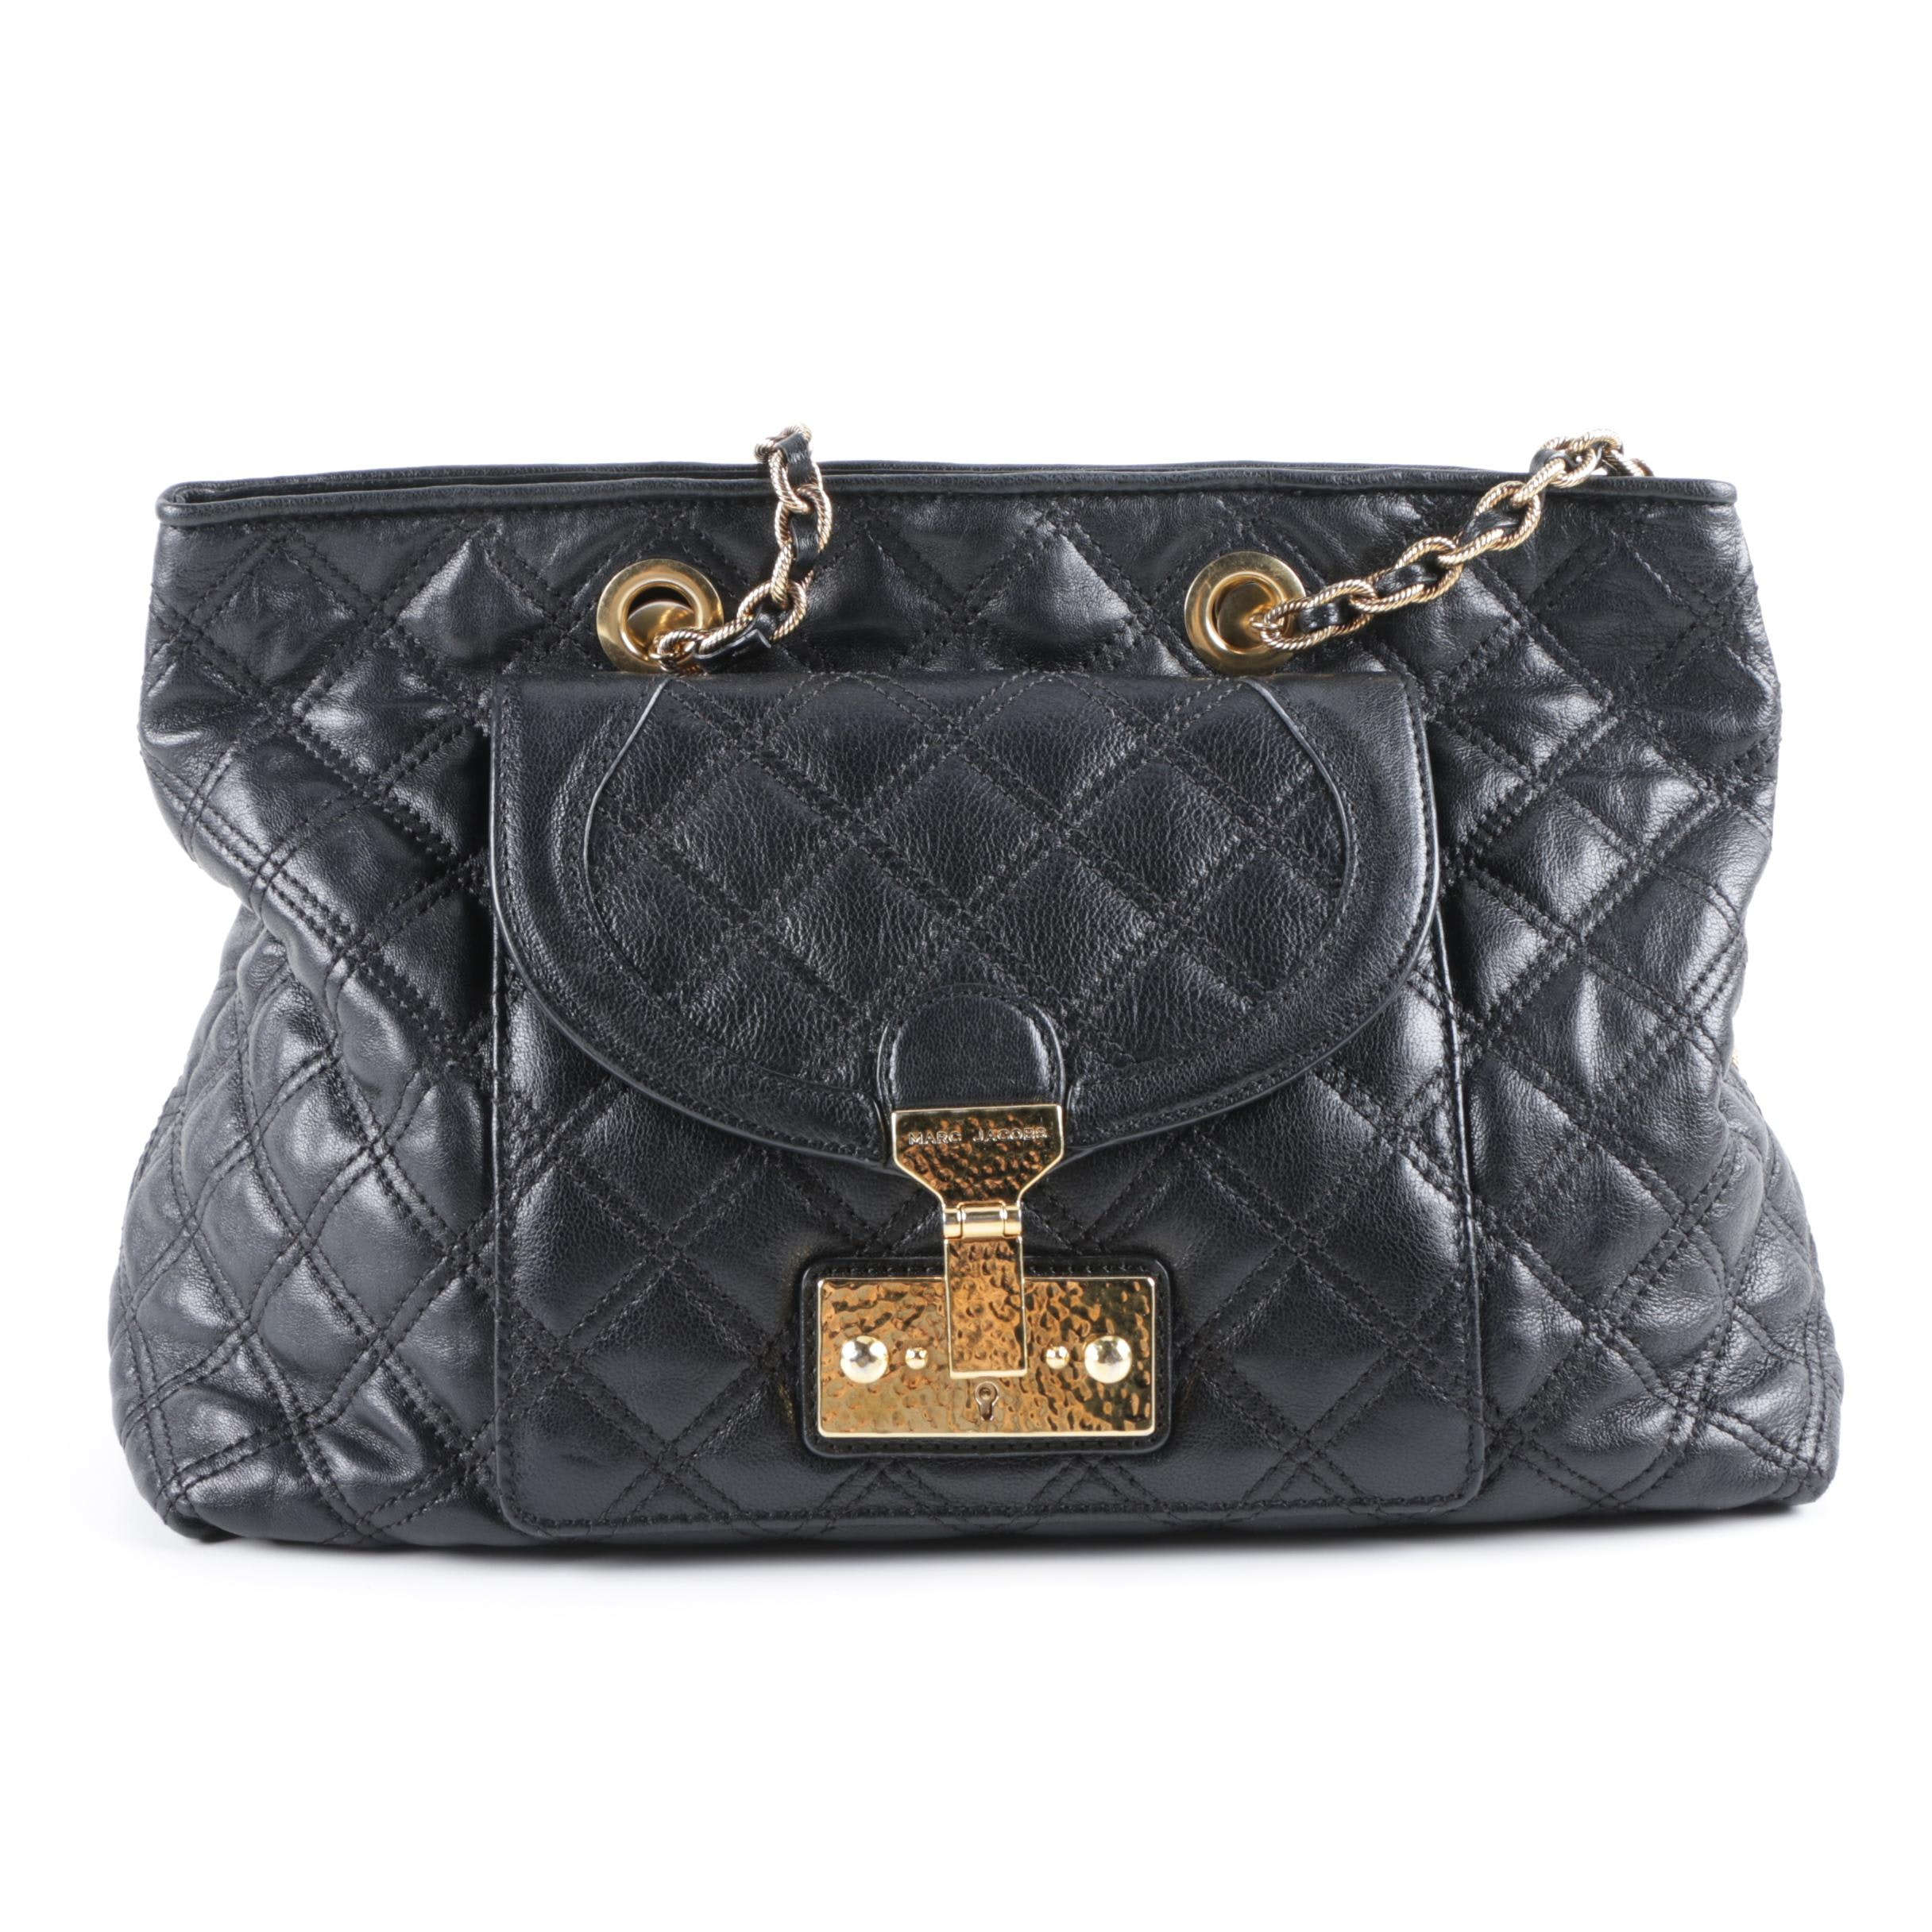 Marc Jacobs Quilted Black Leather Handbag